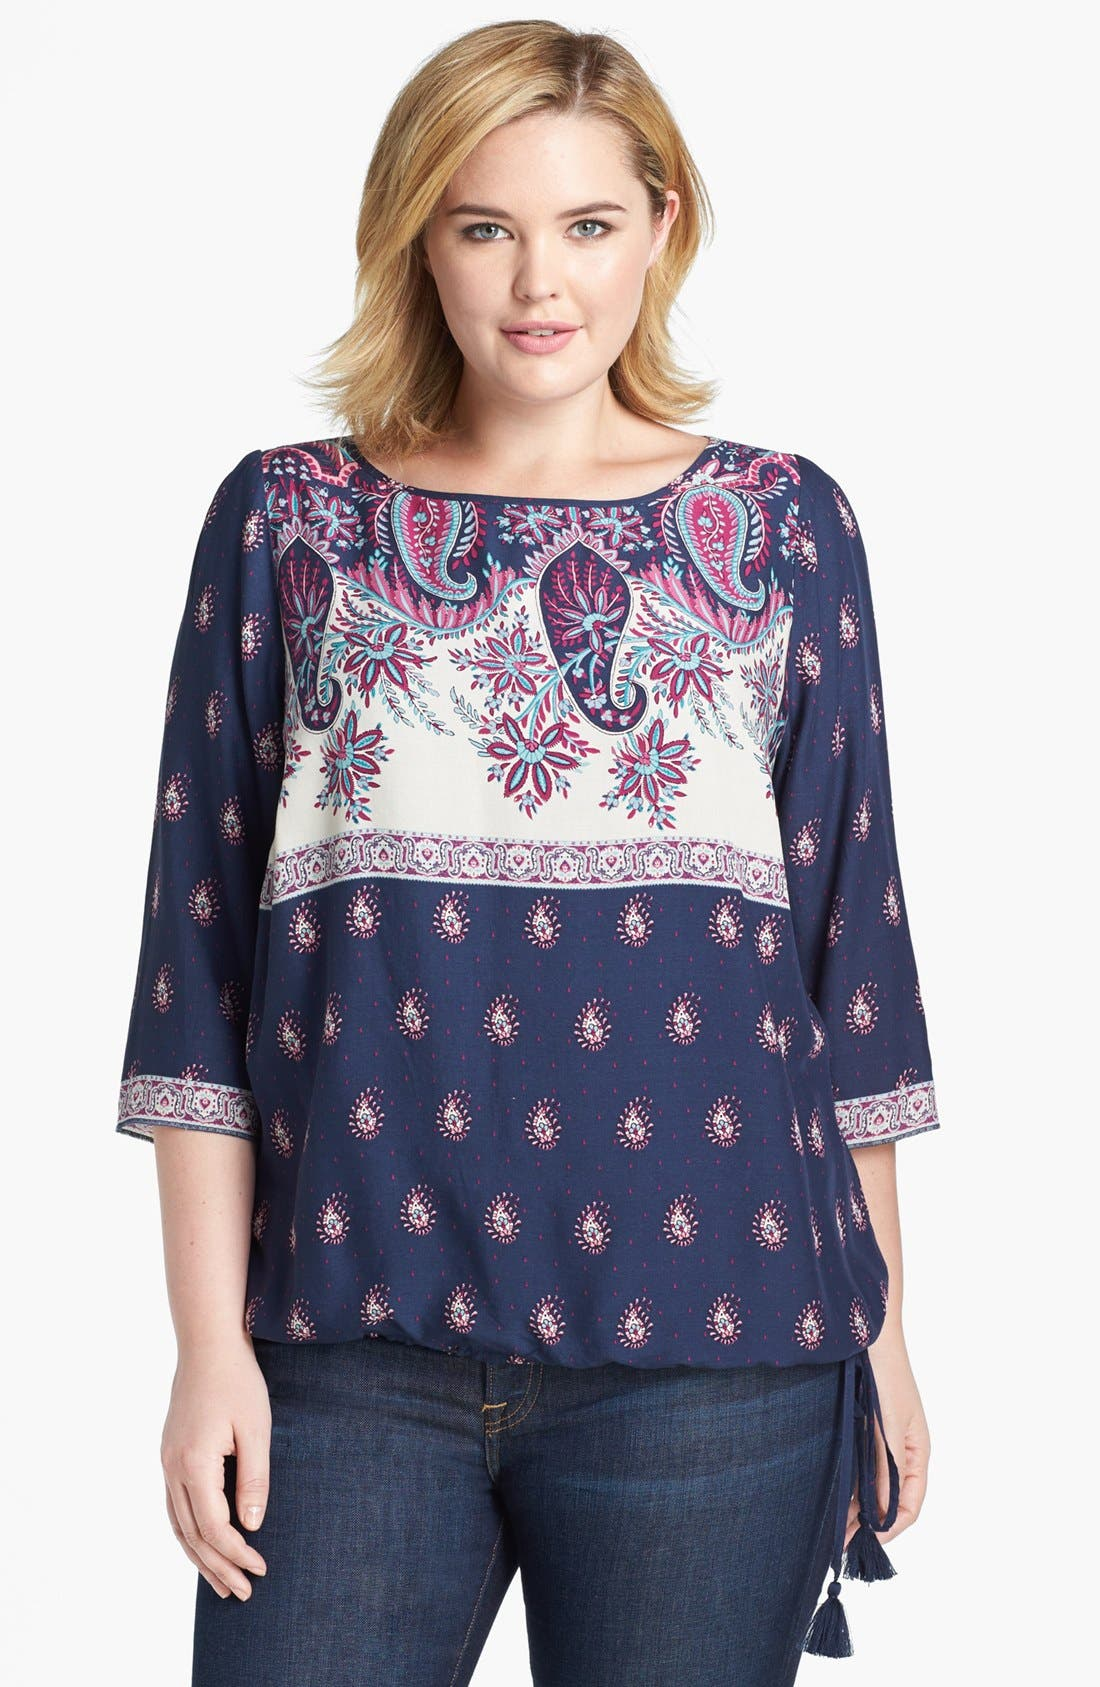 Main Image - Lucky Brand 'Larache' Mixed Print Blouson Top (Plus Size)